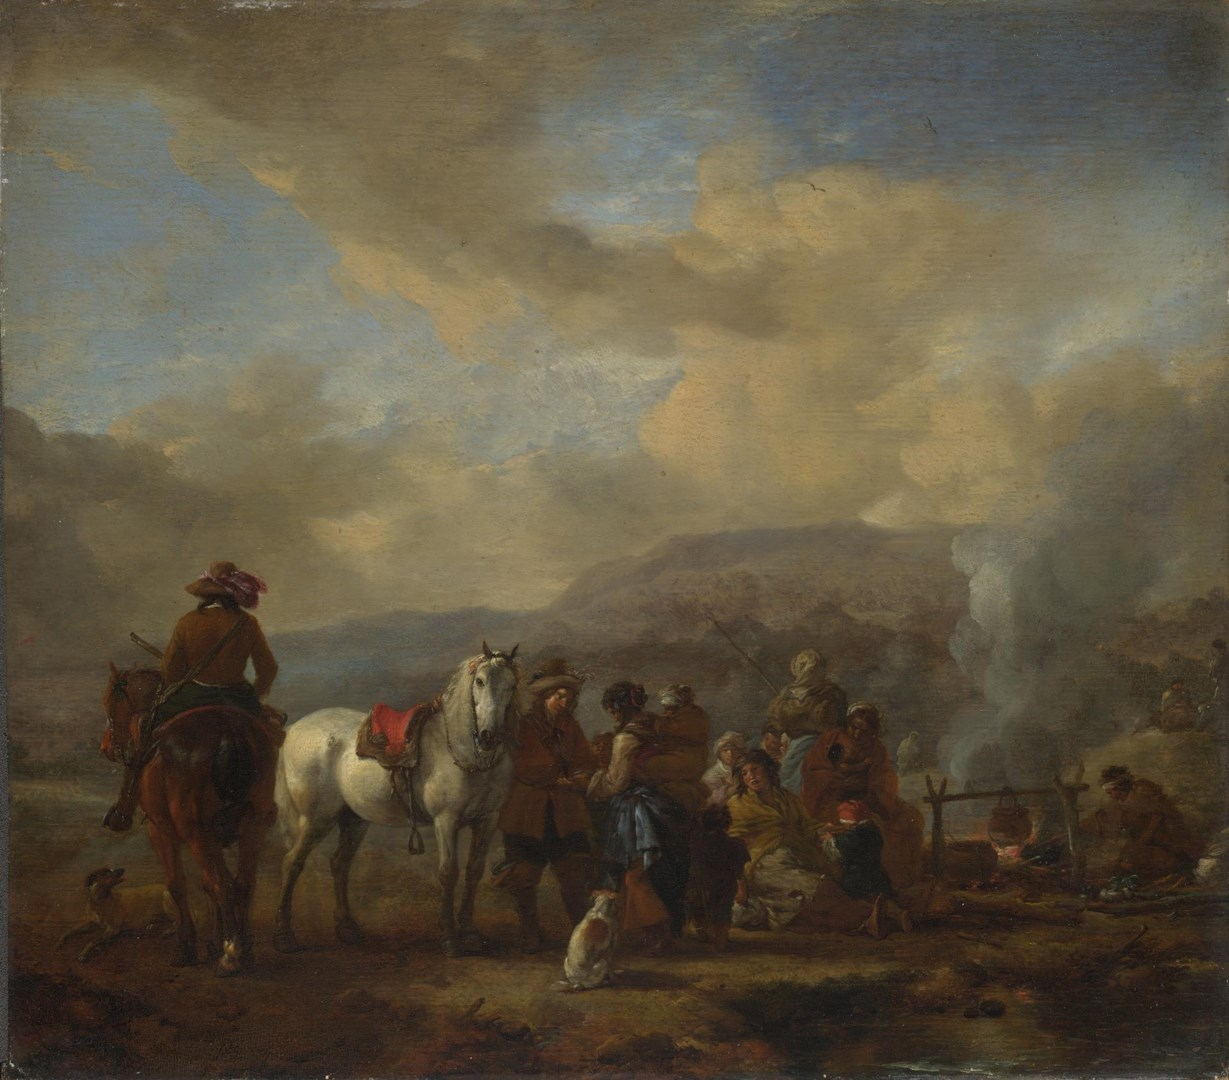 Two Horsemen at a Gipsy Encampment by Philips Wouwerman